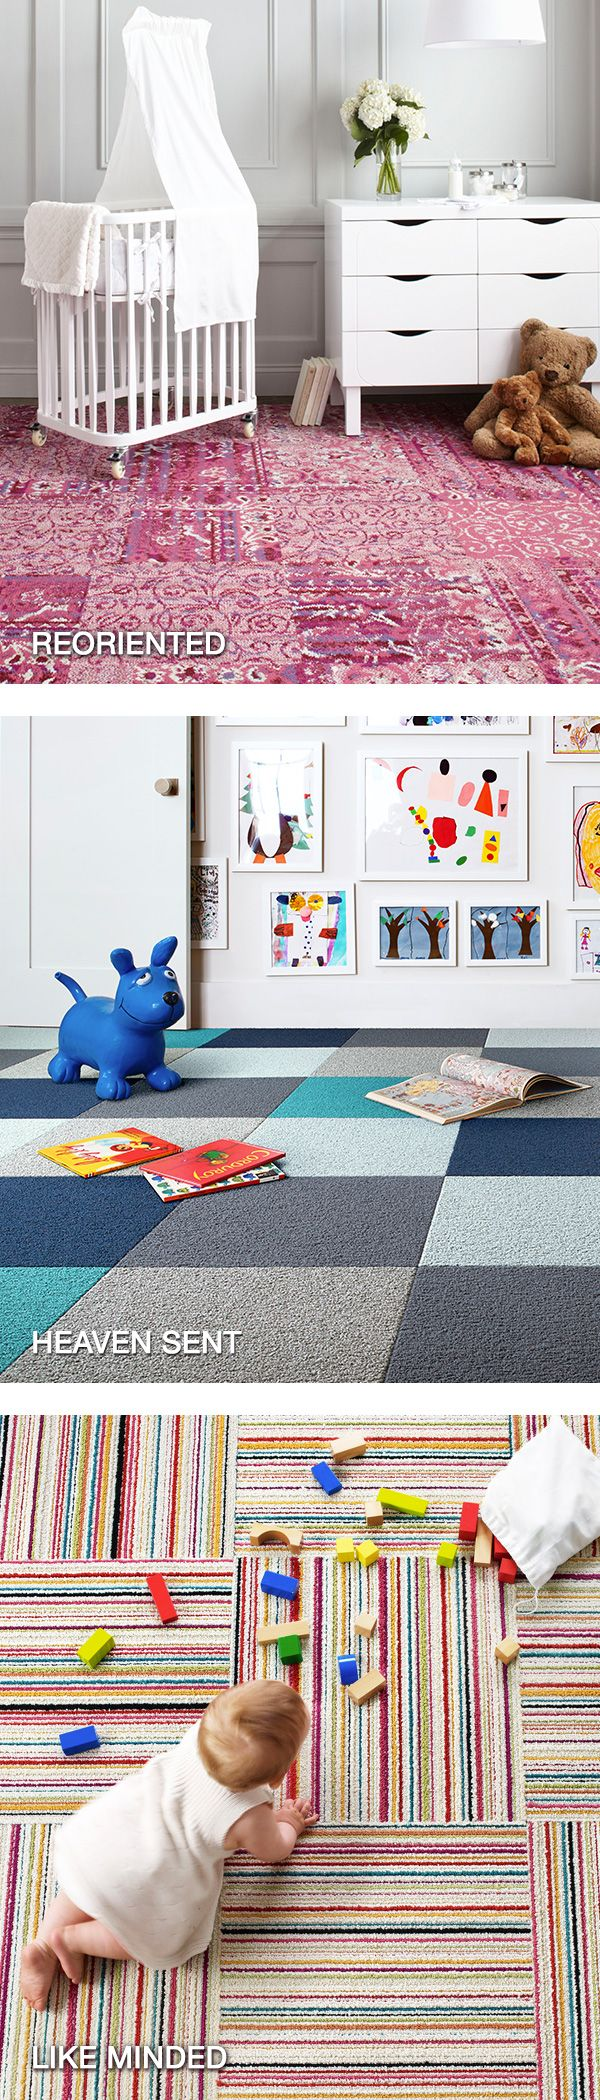 Design a creative area rug for playtime and playdatesflor carpet design a creative area rug for playtime and playdatesflor carpet tiles make it easy dailygadgetfo Choice Image